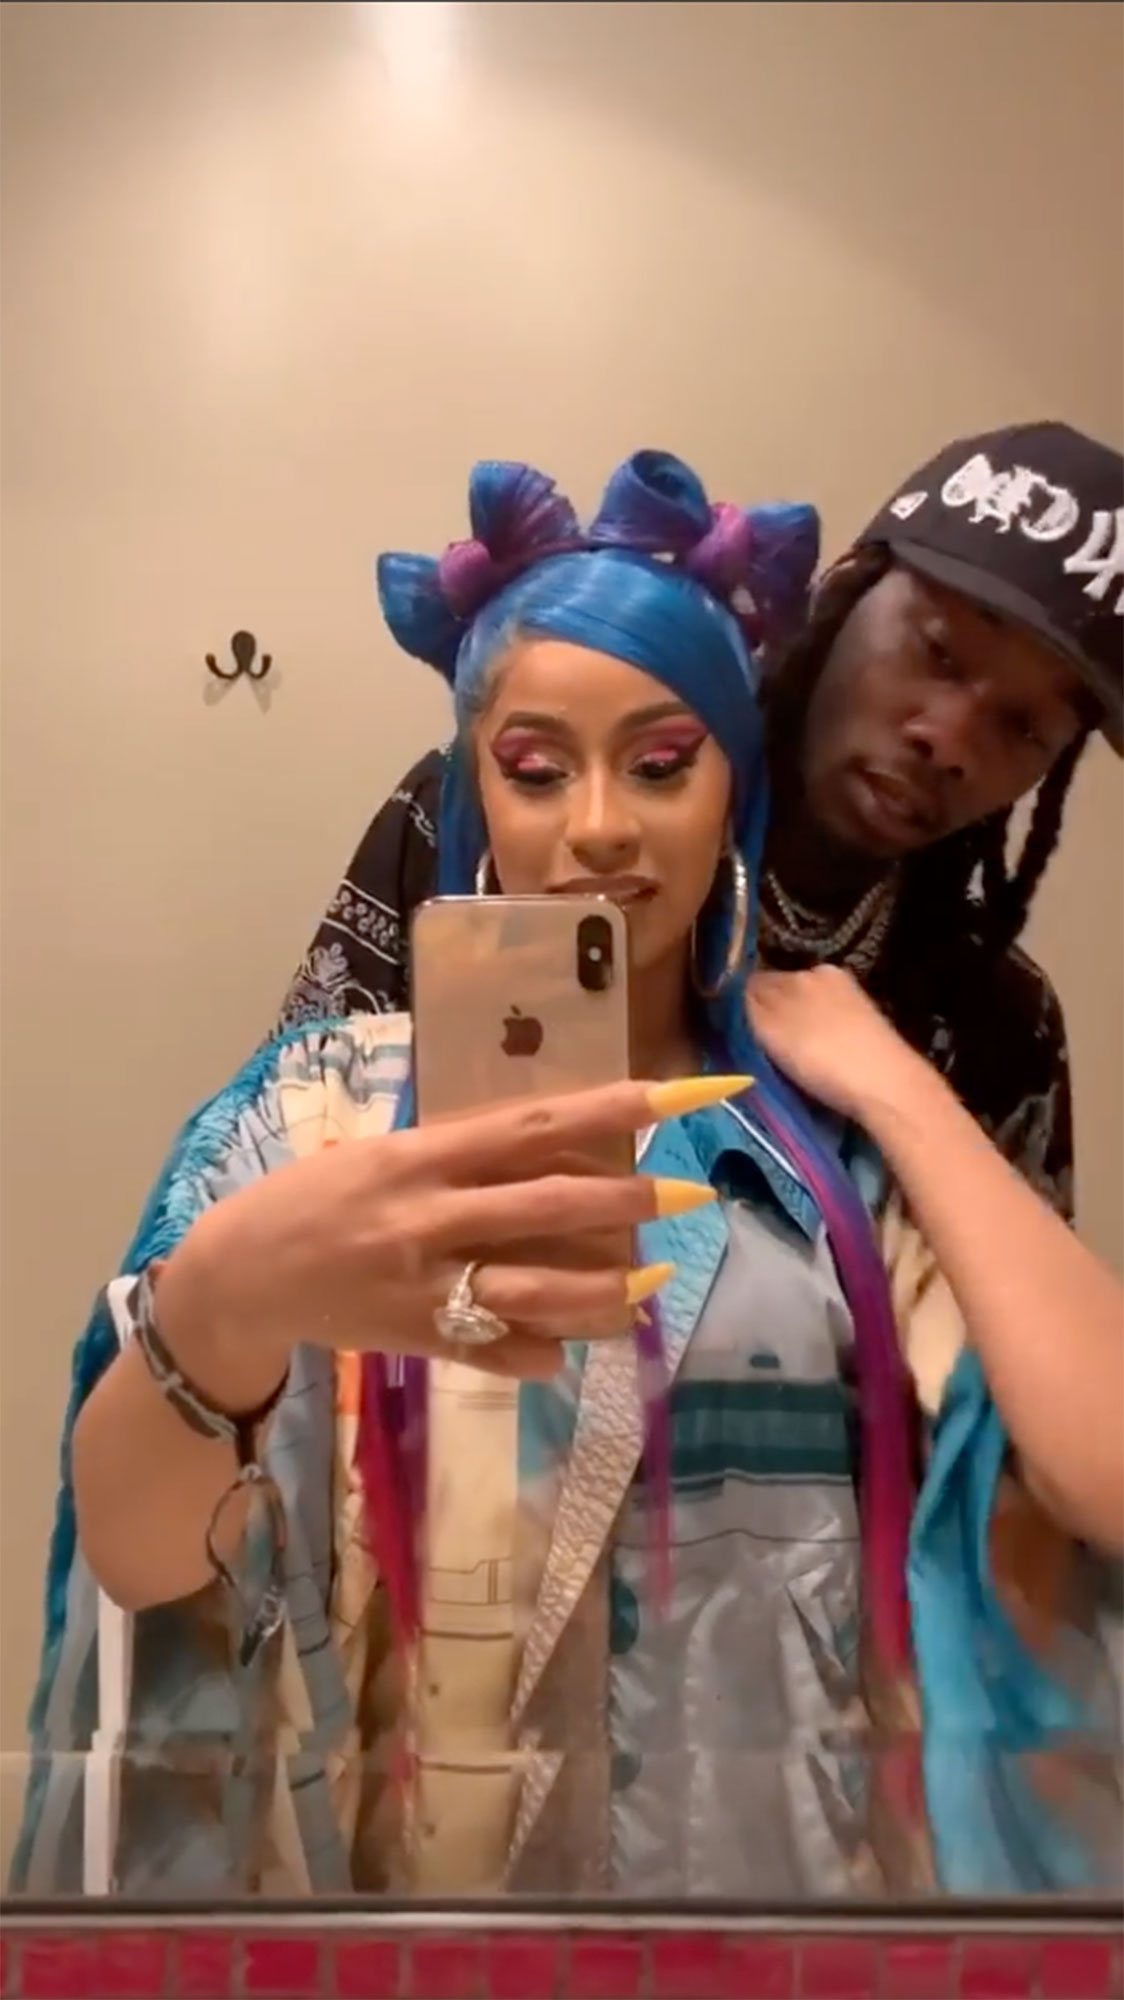 "Cardi B coachella offset - The "" Money "" rapper admired her own Coachella-ready, multi-colored locks in a mirror before husband Offset swooped in to shower her with kisses at the Revolve Festival, where she joined him on stage."